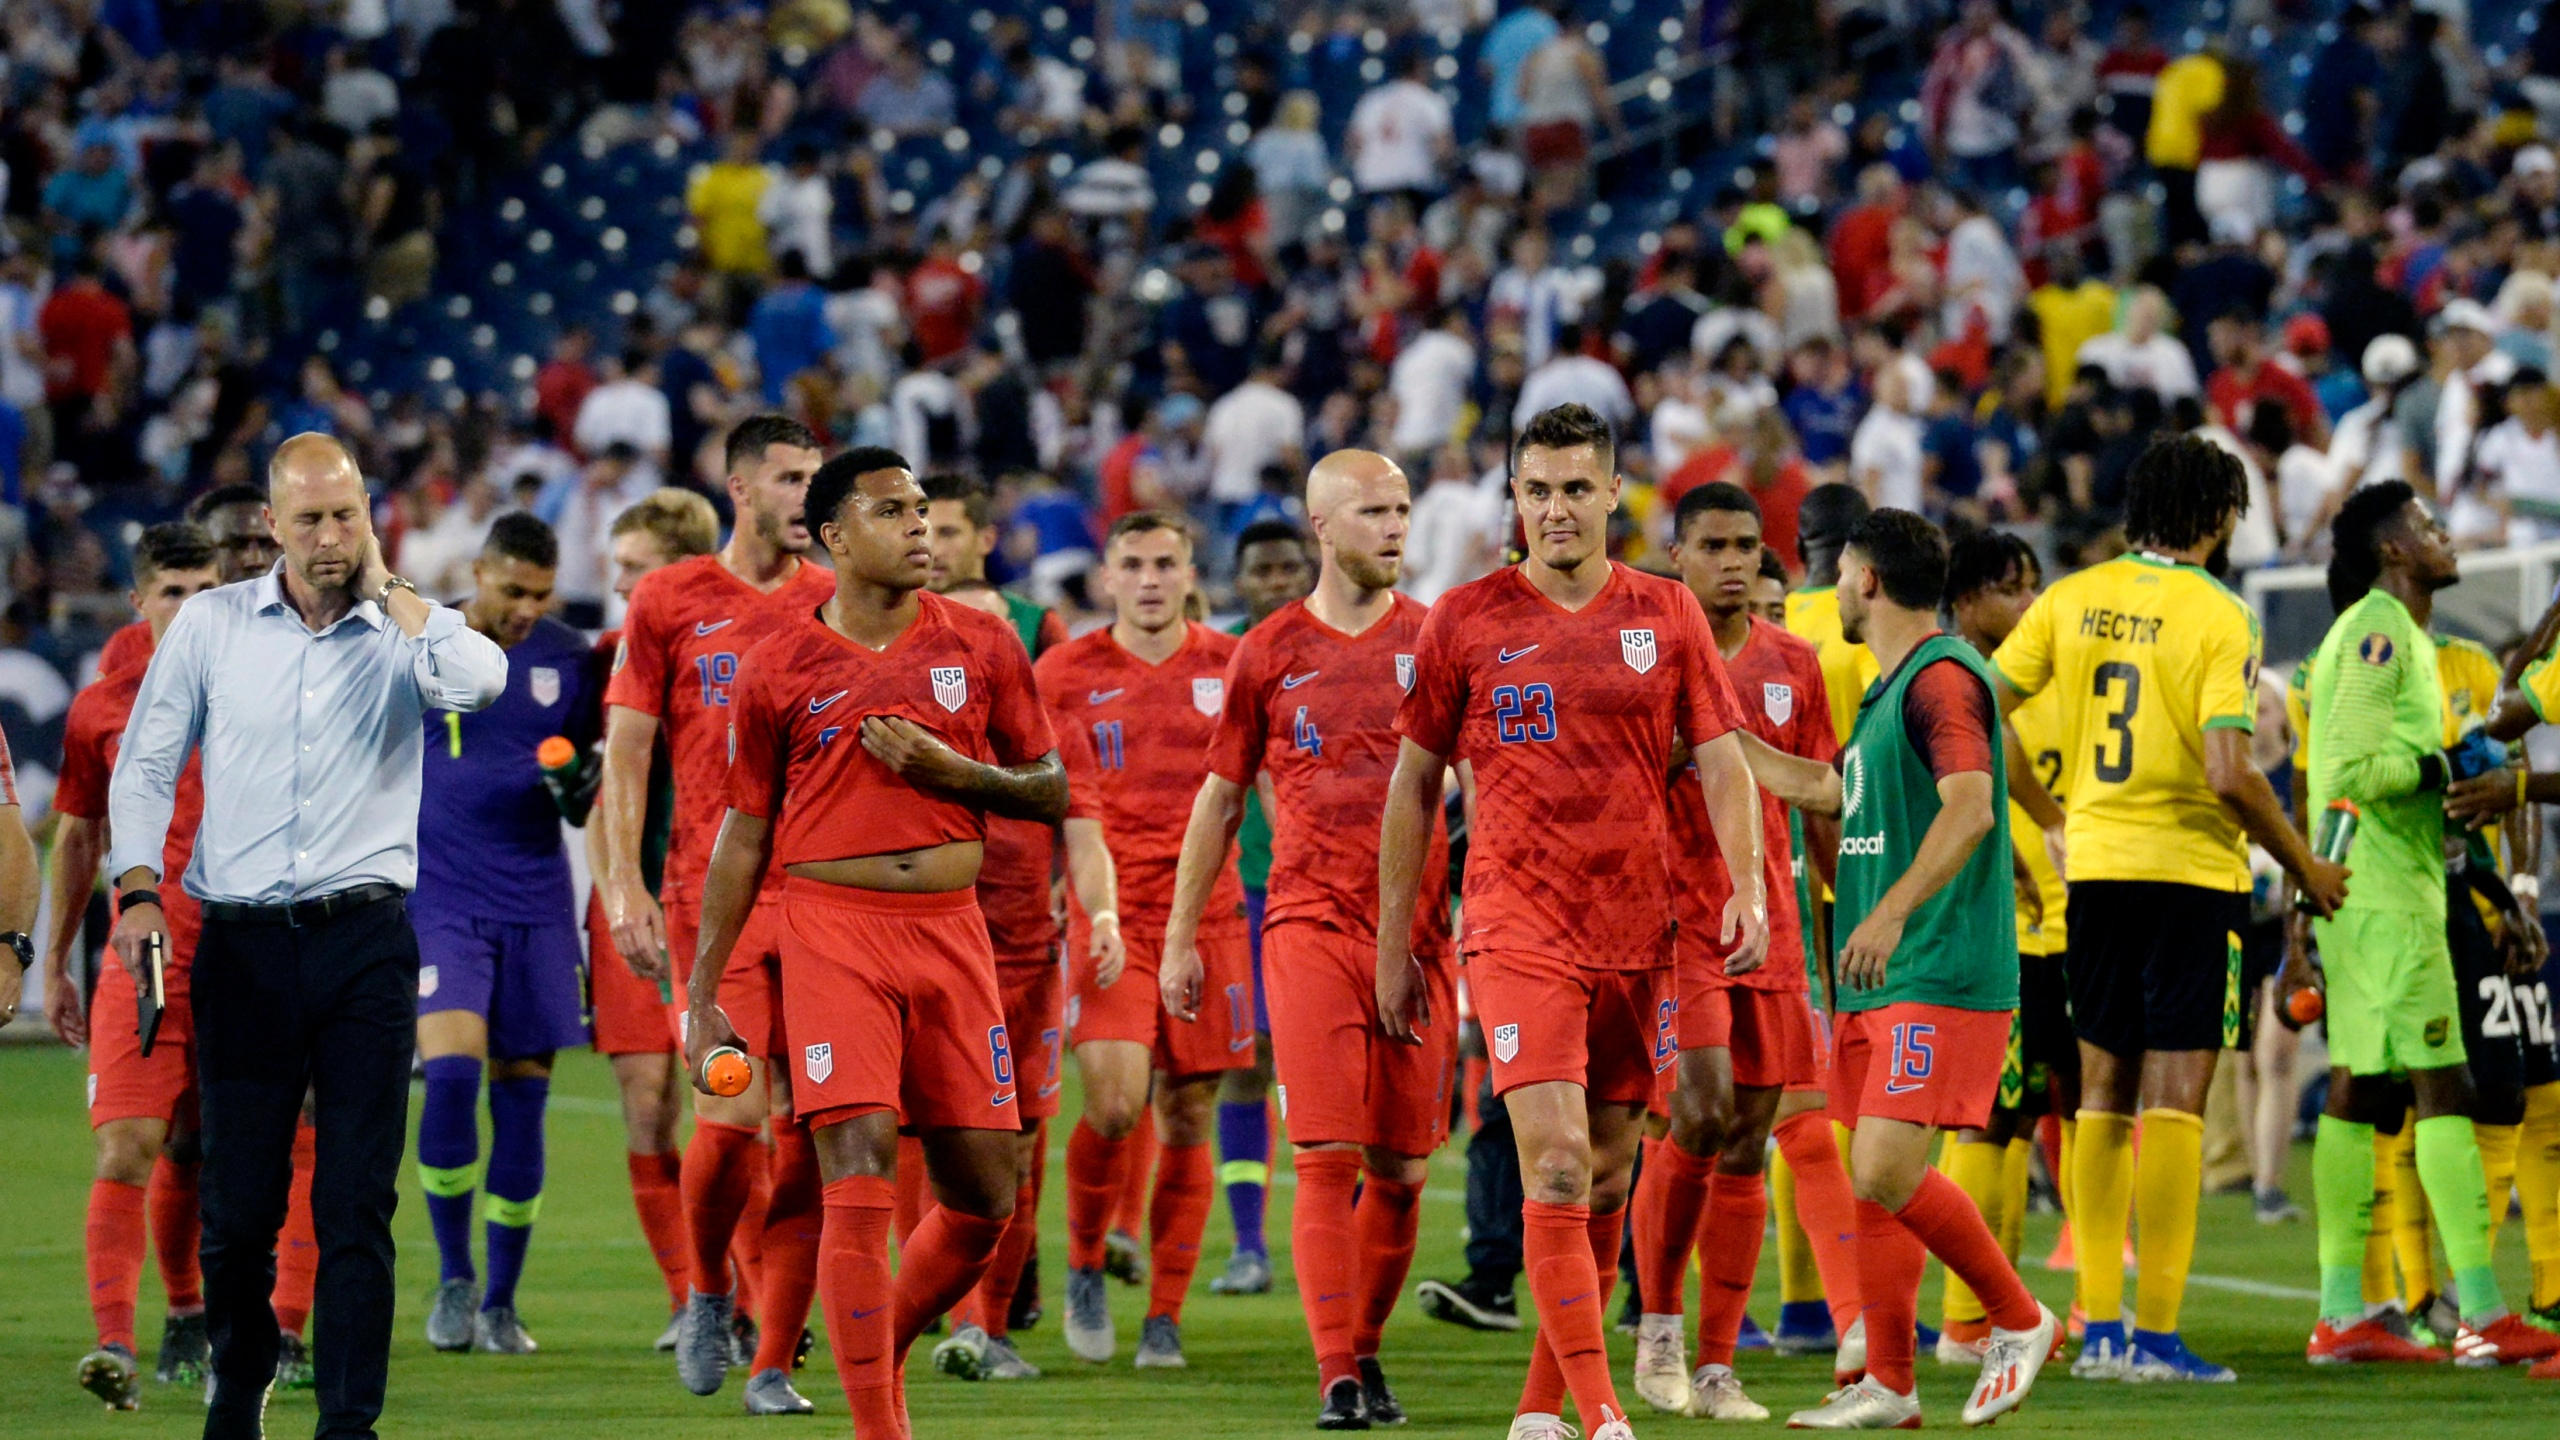 Preview Usmnt To Face Mexico In Gold Cup Final Wkrn News 2